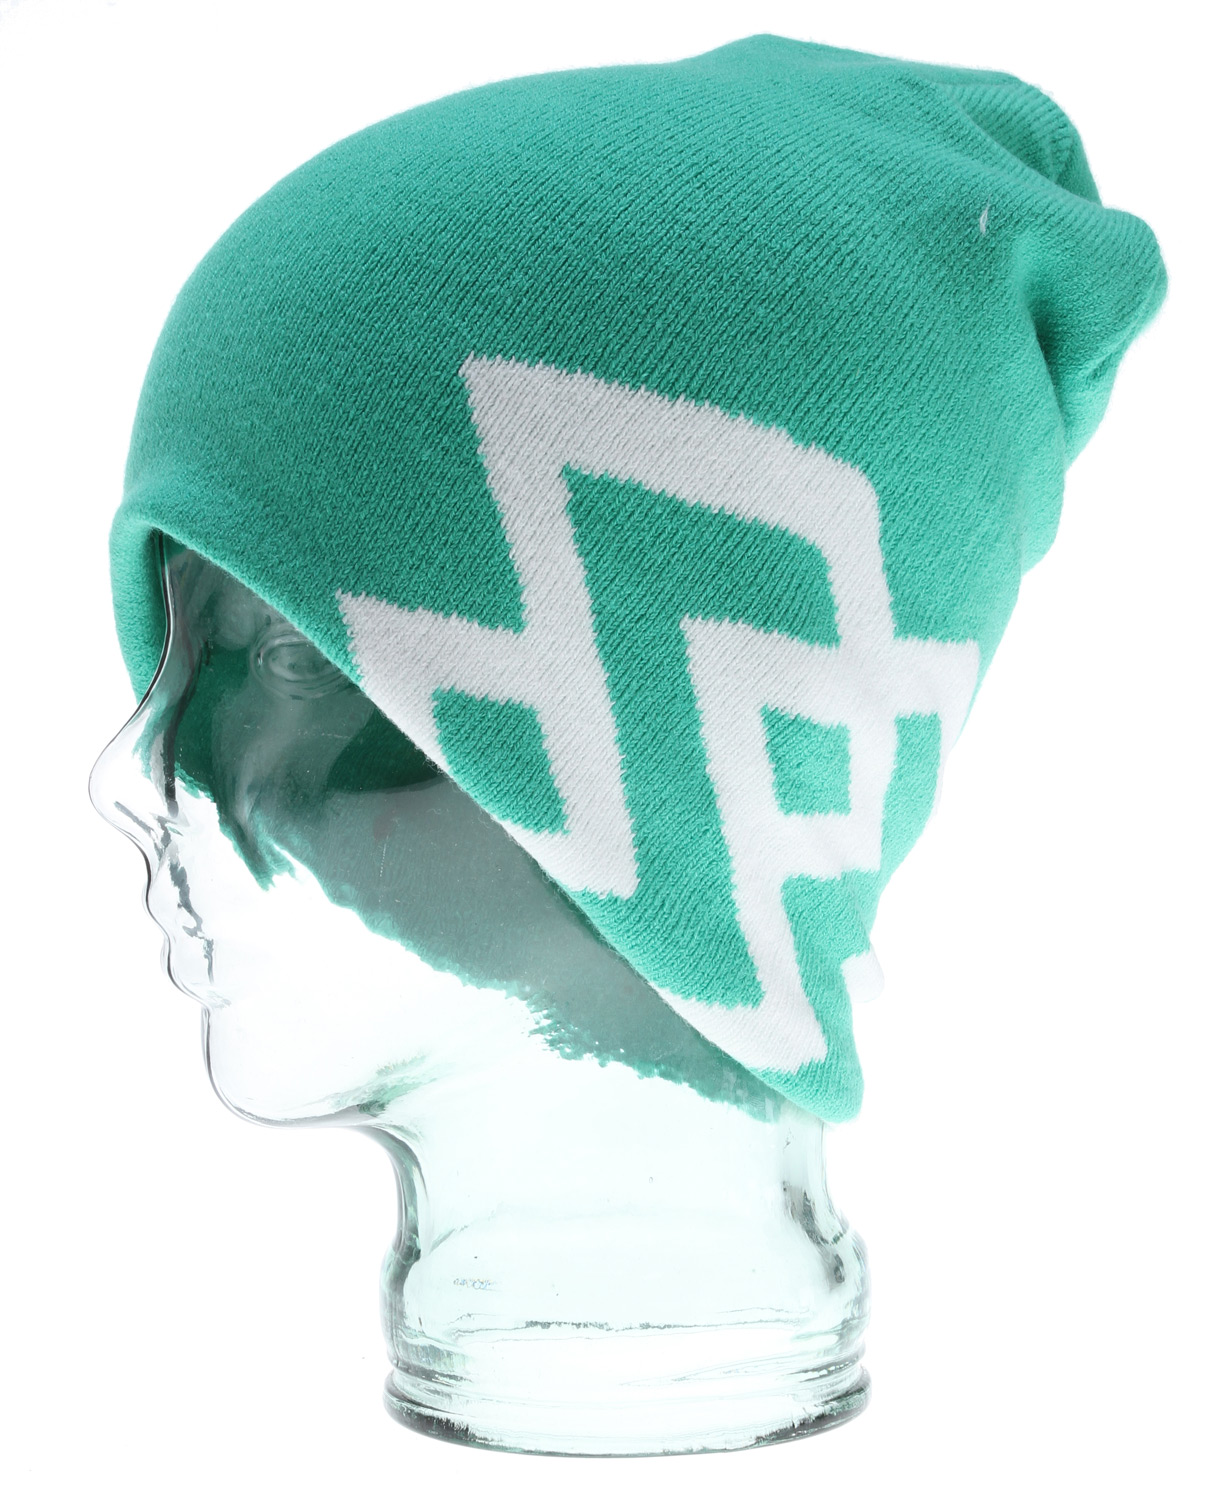 Key Features of the Special Blend Chugger Beanie: Machine Knit 97% Acrylic 3% Spandex Slouch Style Magic Knit Jacquard - $19.99